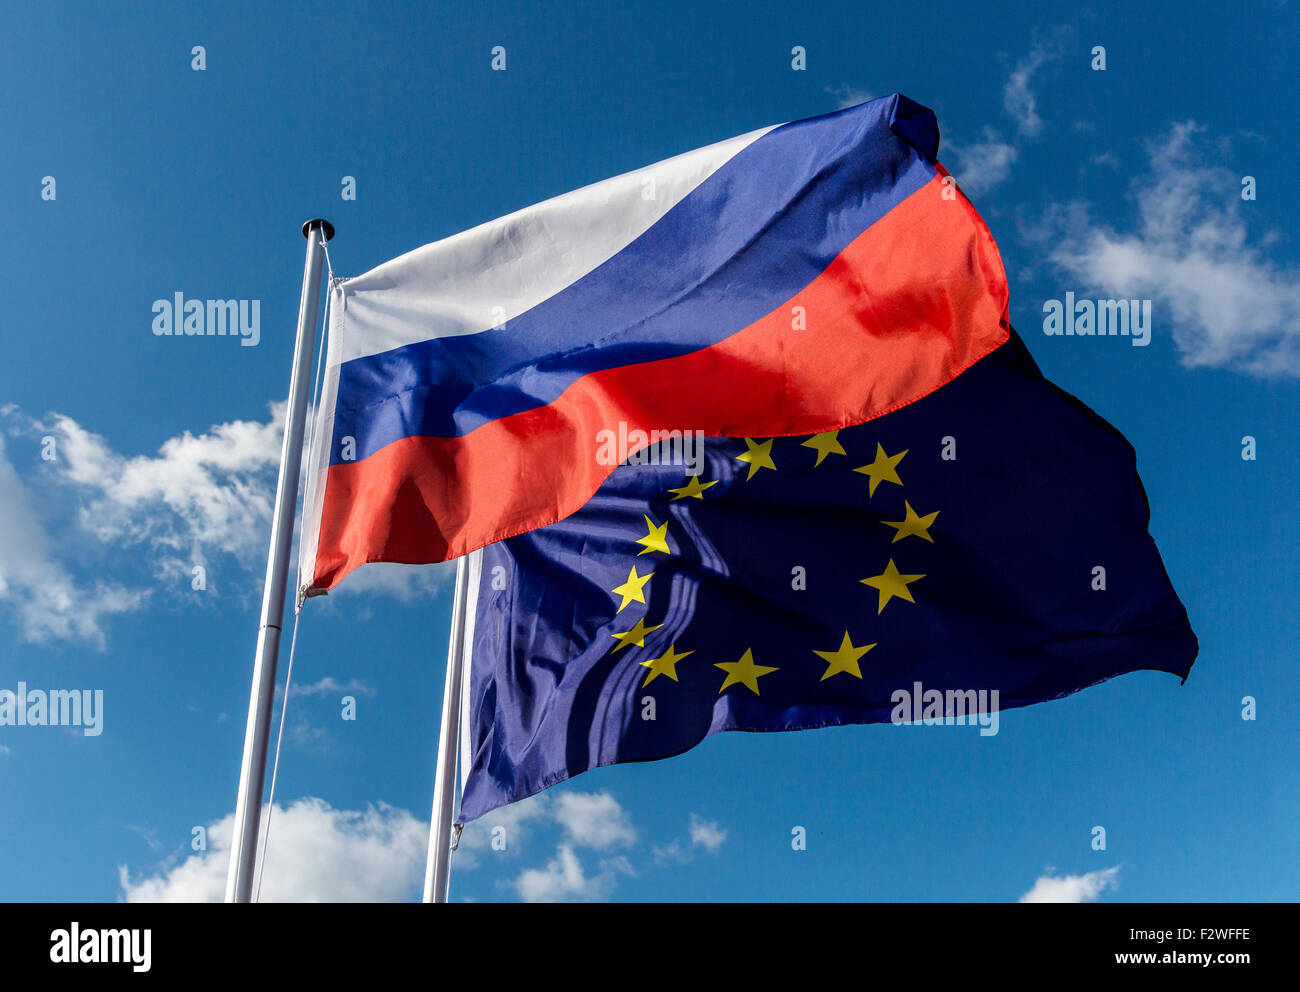 18.04.2015, Berlin, Berlin, Germany - Flag of Russian Federation and European Union flag blowing in the wind. - Stock Image